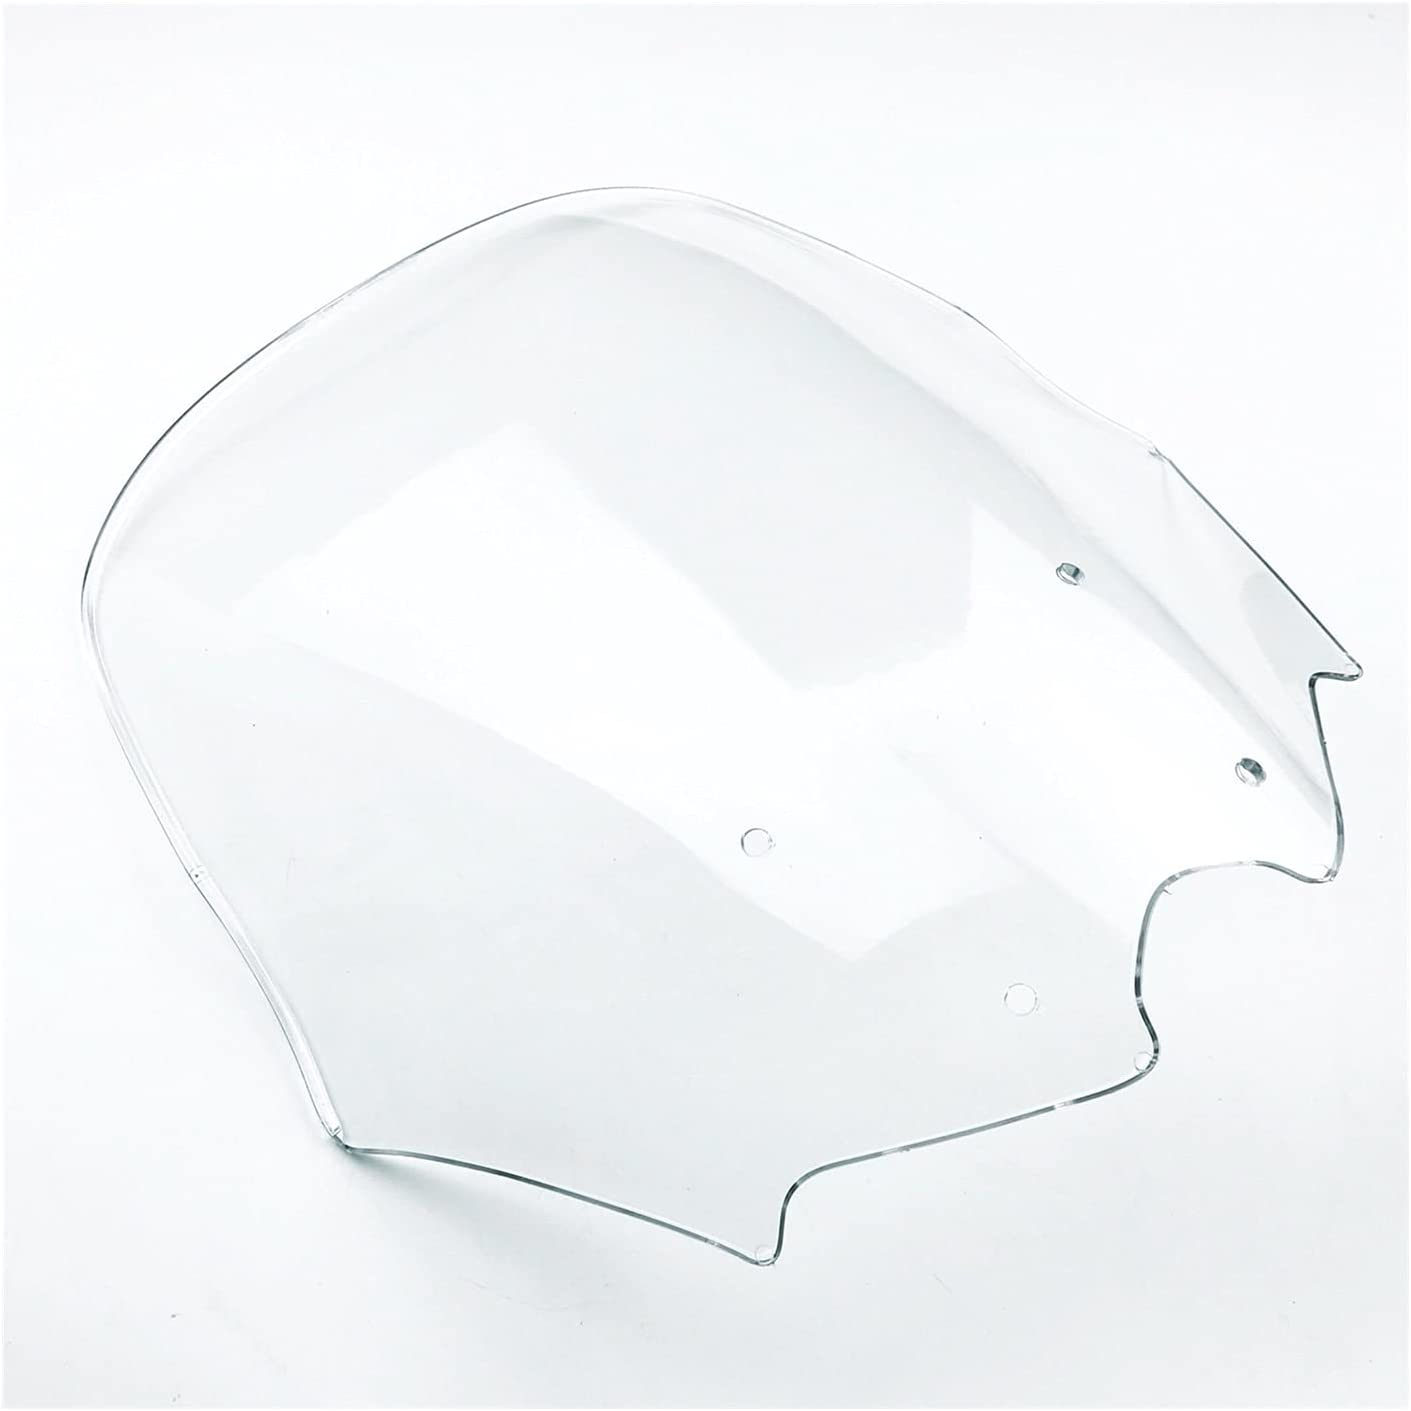 Motorcycle Windshield for NC700S NC750S 2012 NC700 2011 NC750 20 ! Super beauty product restock quality top! Max 42% OFF